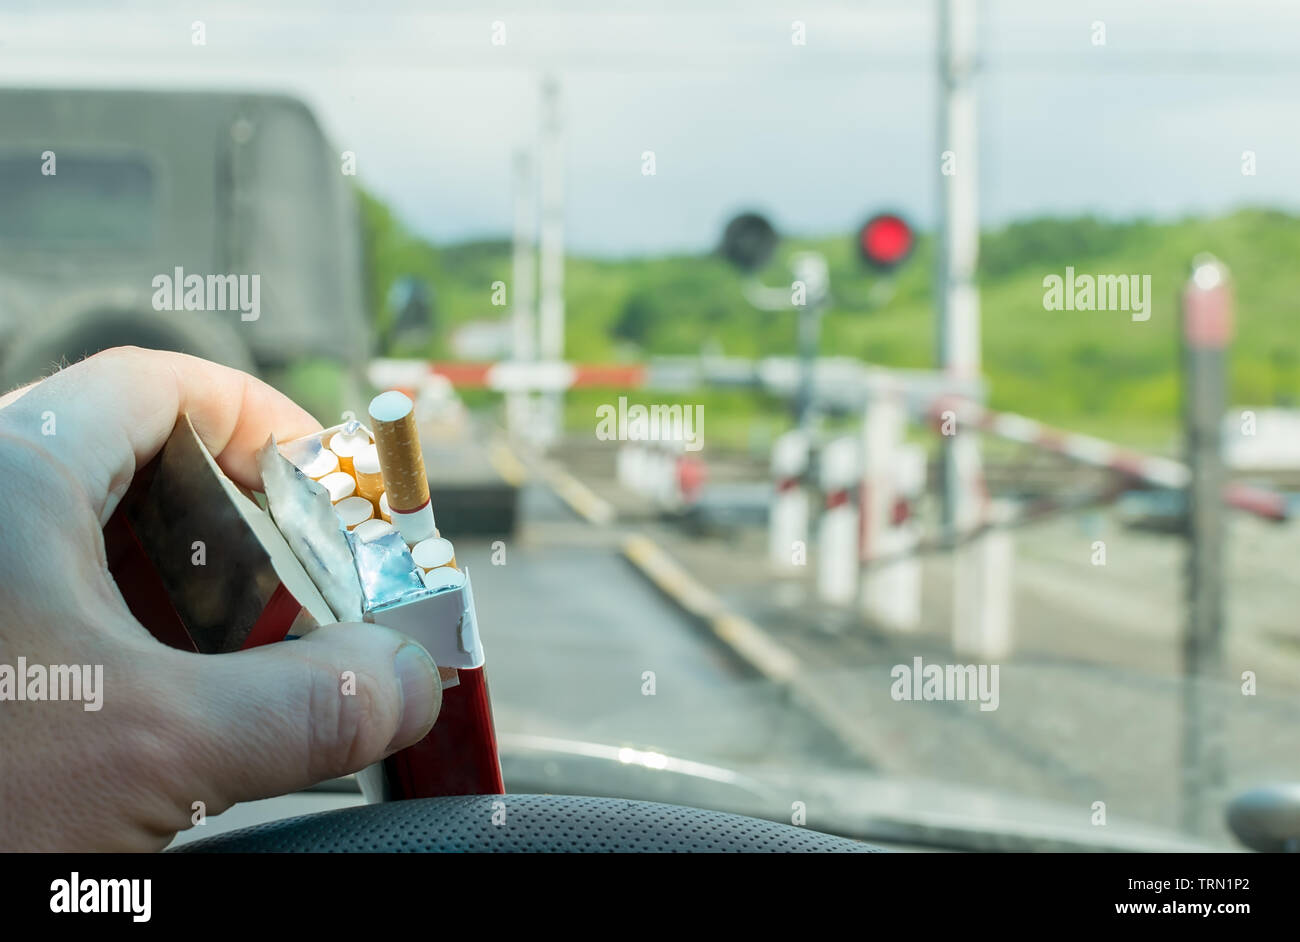 View of the driver hand with a pack of cigarettes on the steering wheel of the car, which stopped before a closed railway crossing at a red light Stock Photo